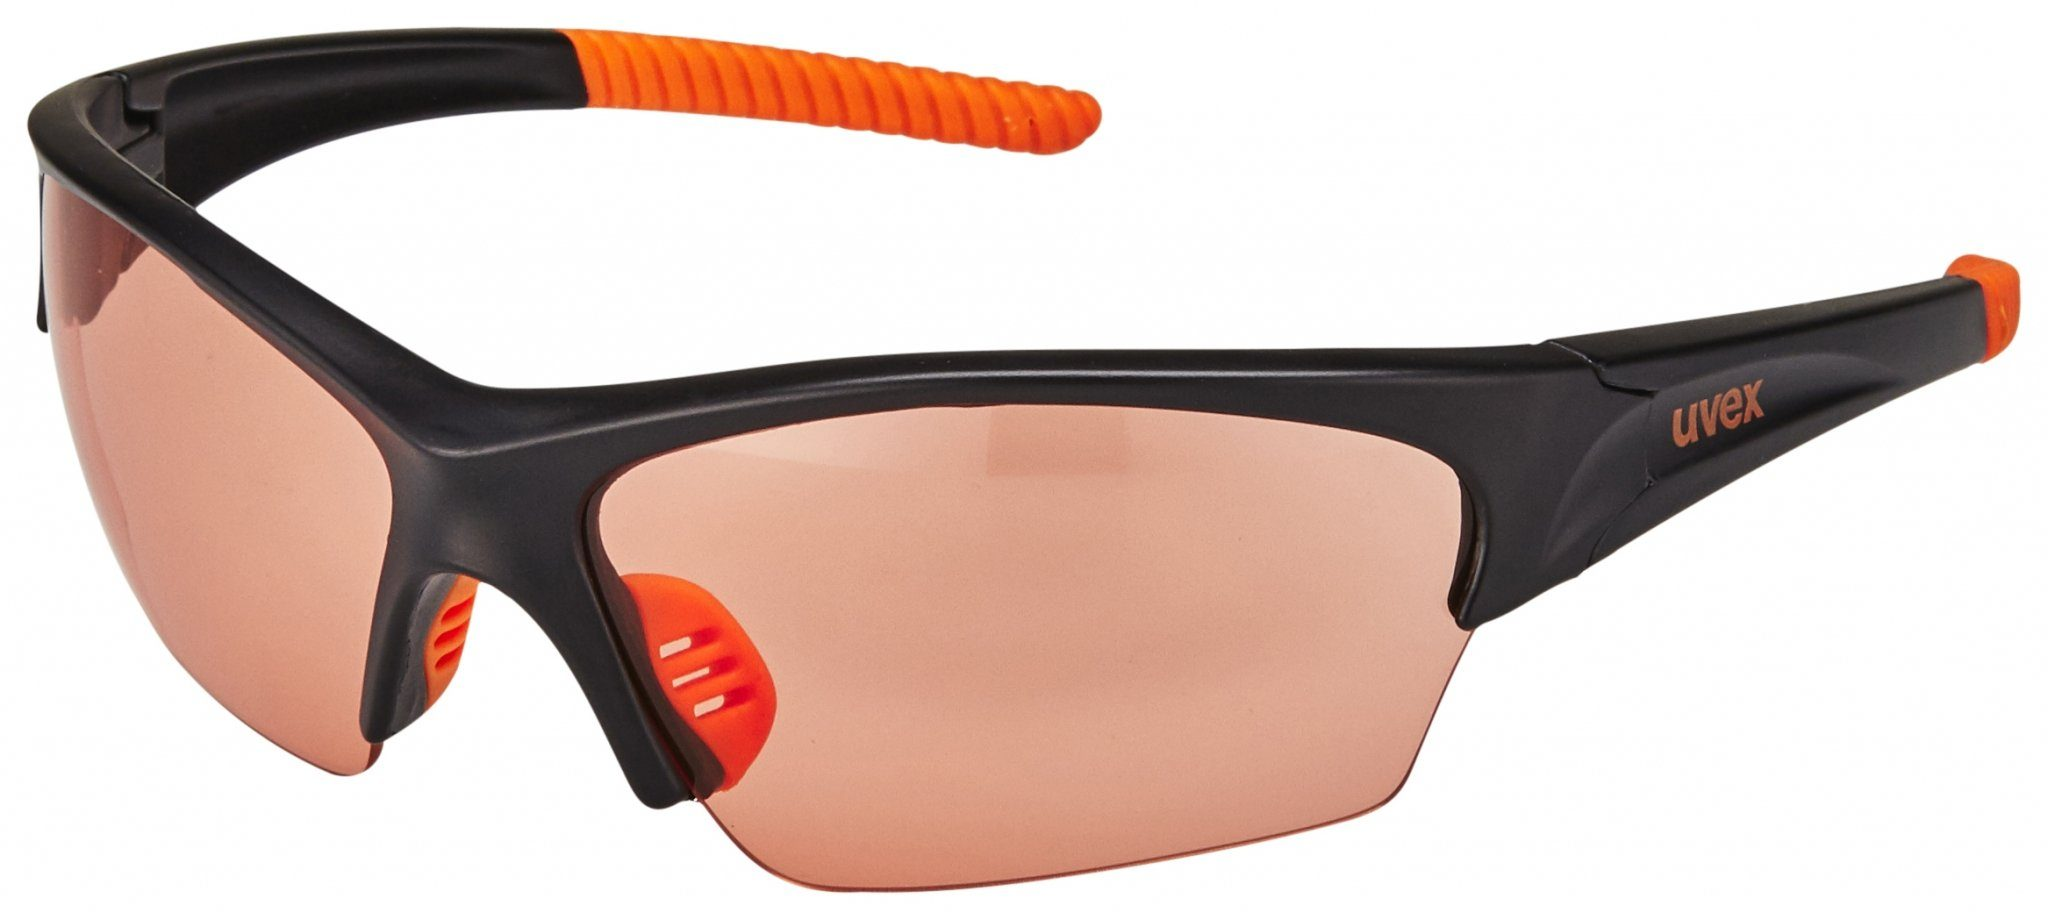 Uvex Radsportbrille »sunsation Glasses«